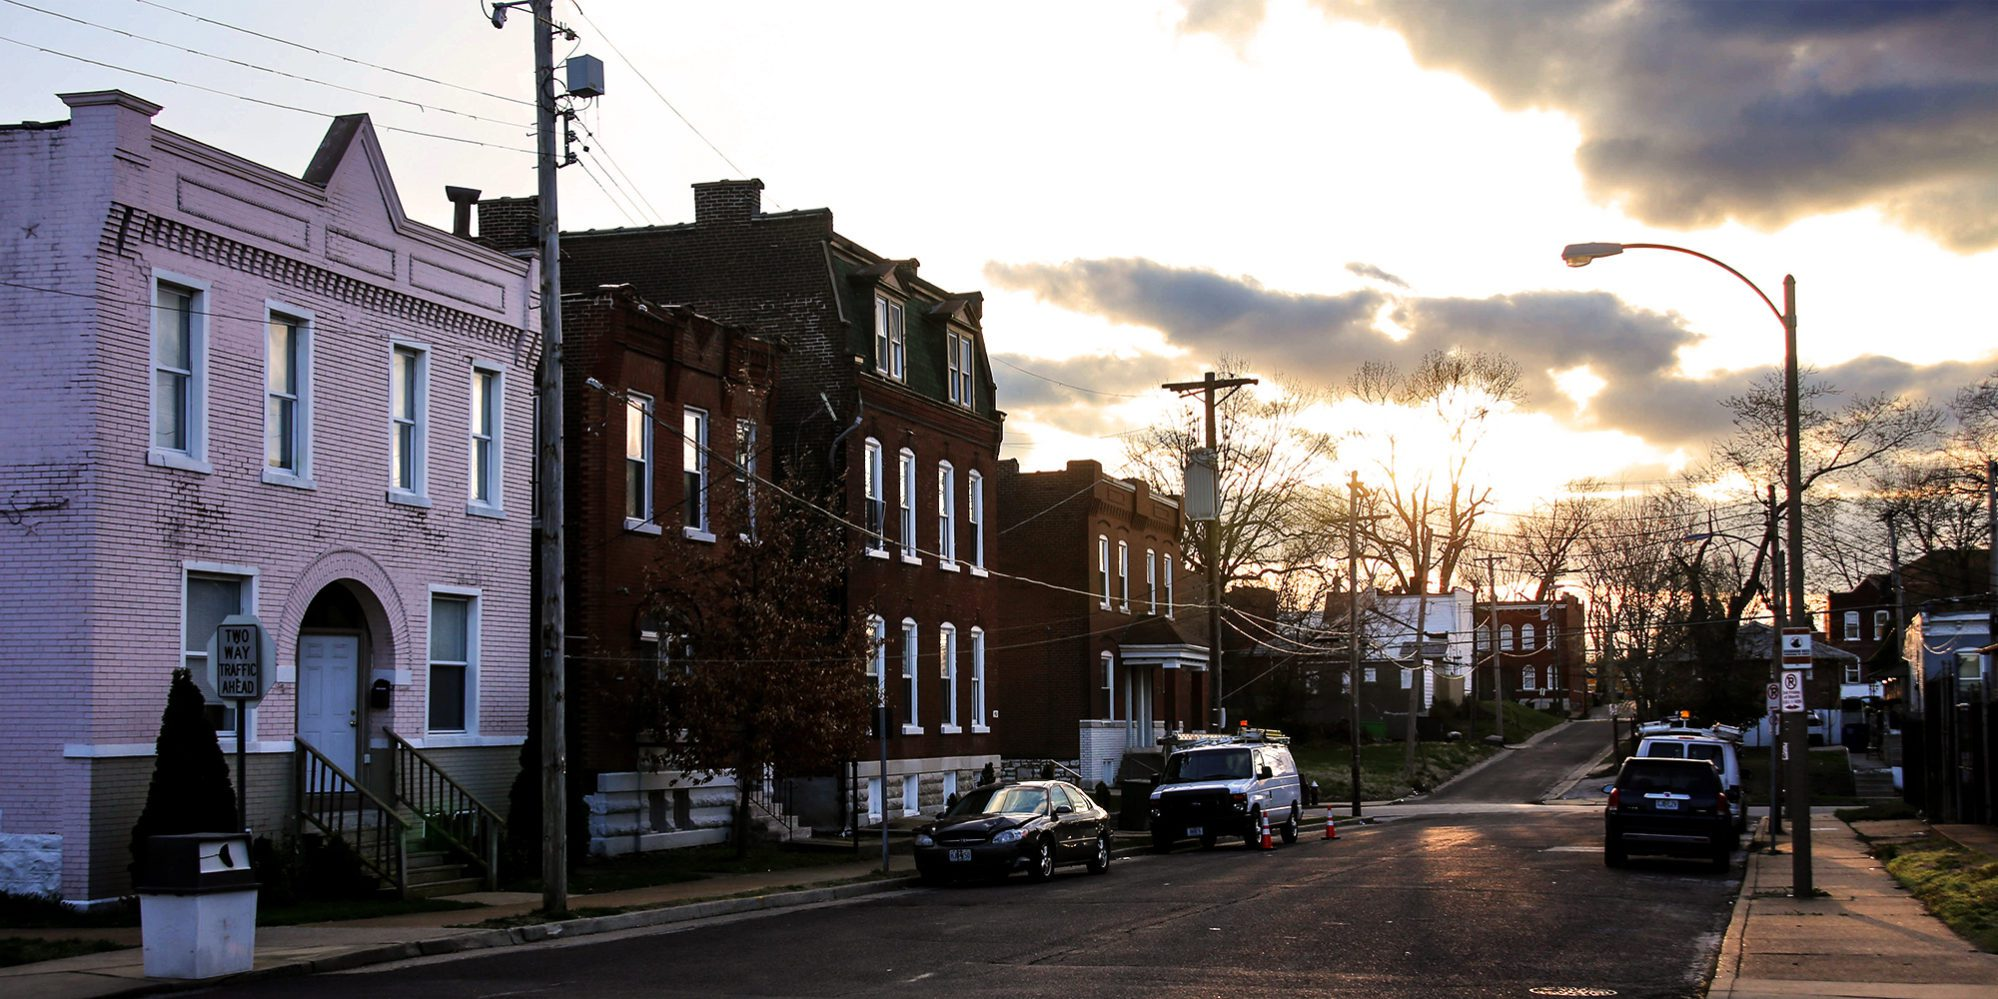 Salena Street and Winnebago Street in the Marine Villa neighborhood of Greater Dutchtown, St. Louis, MO.